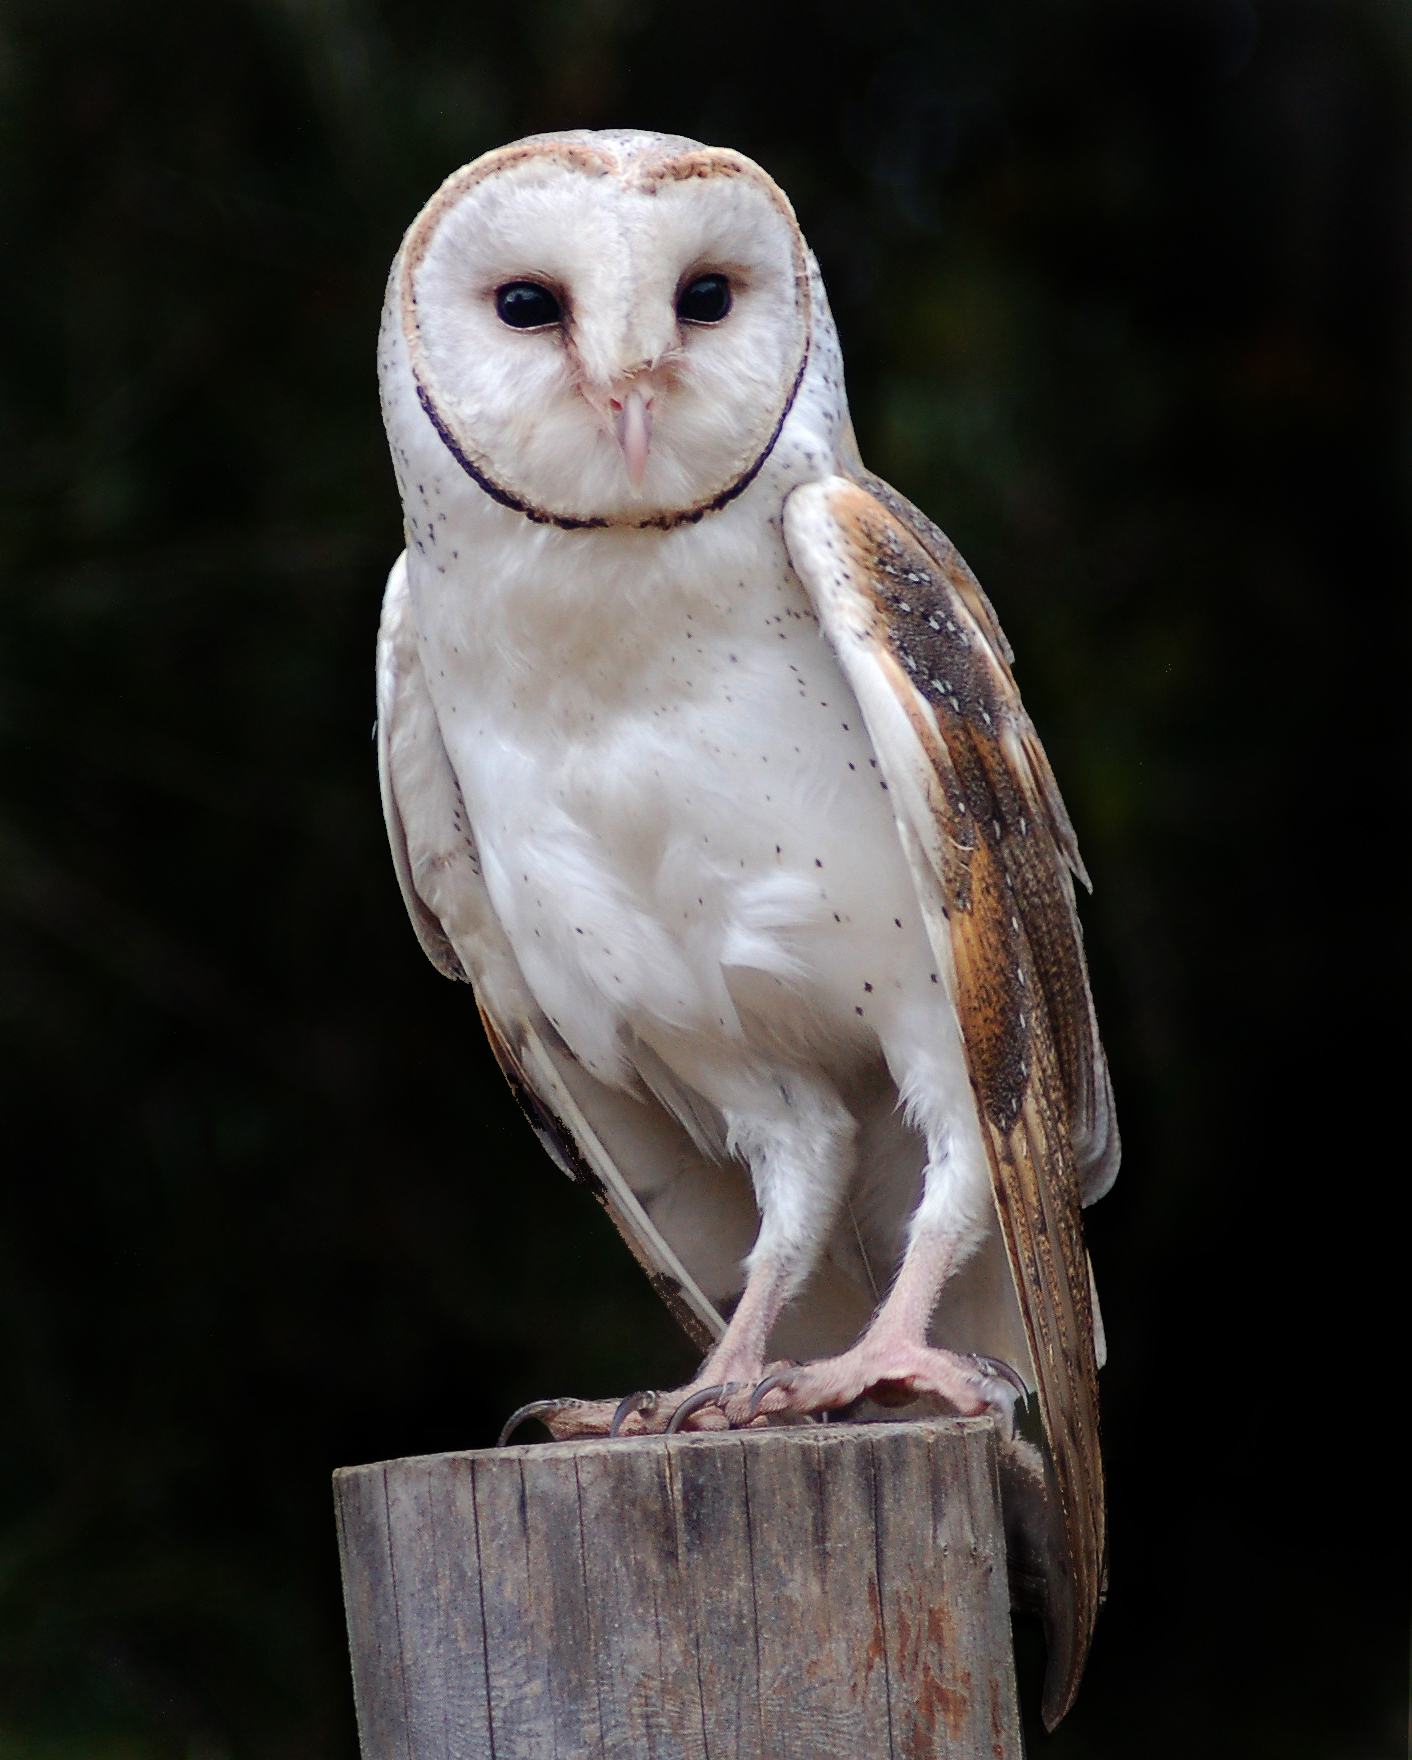 Barn Owl New Zealand Birds Online